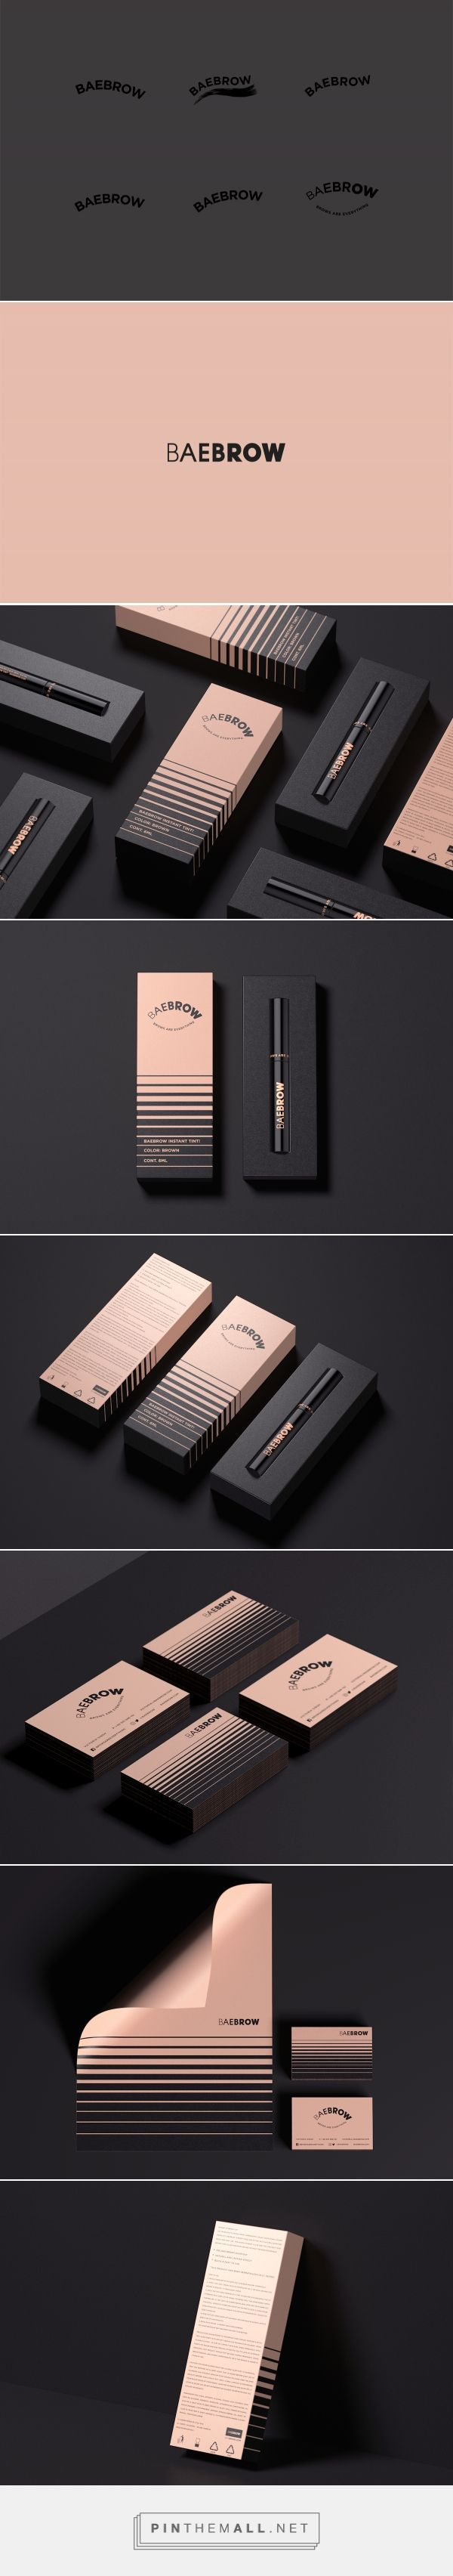 BAEBROW_Identity/Packaging on Behance - created via